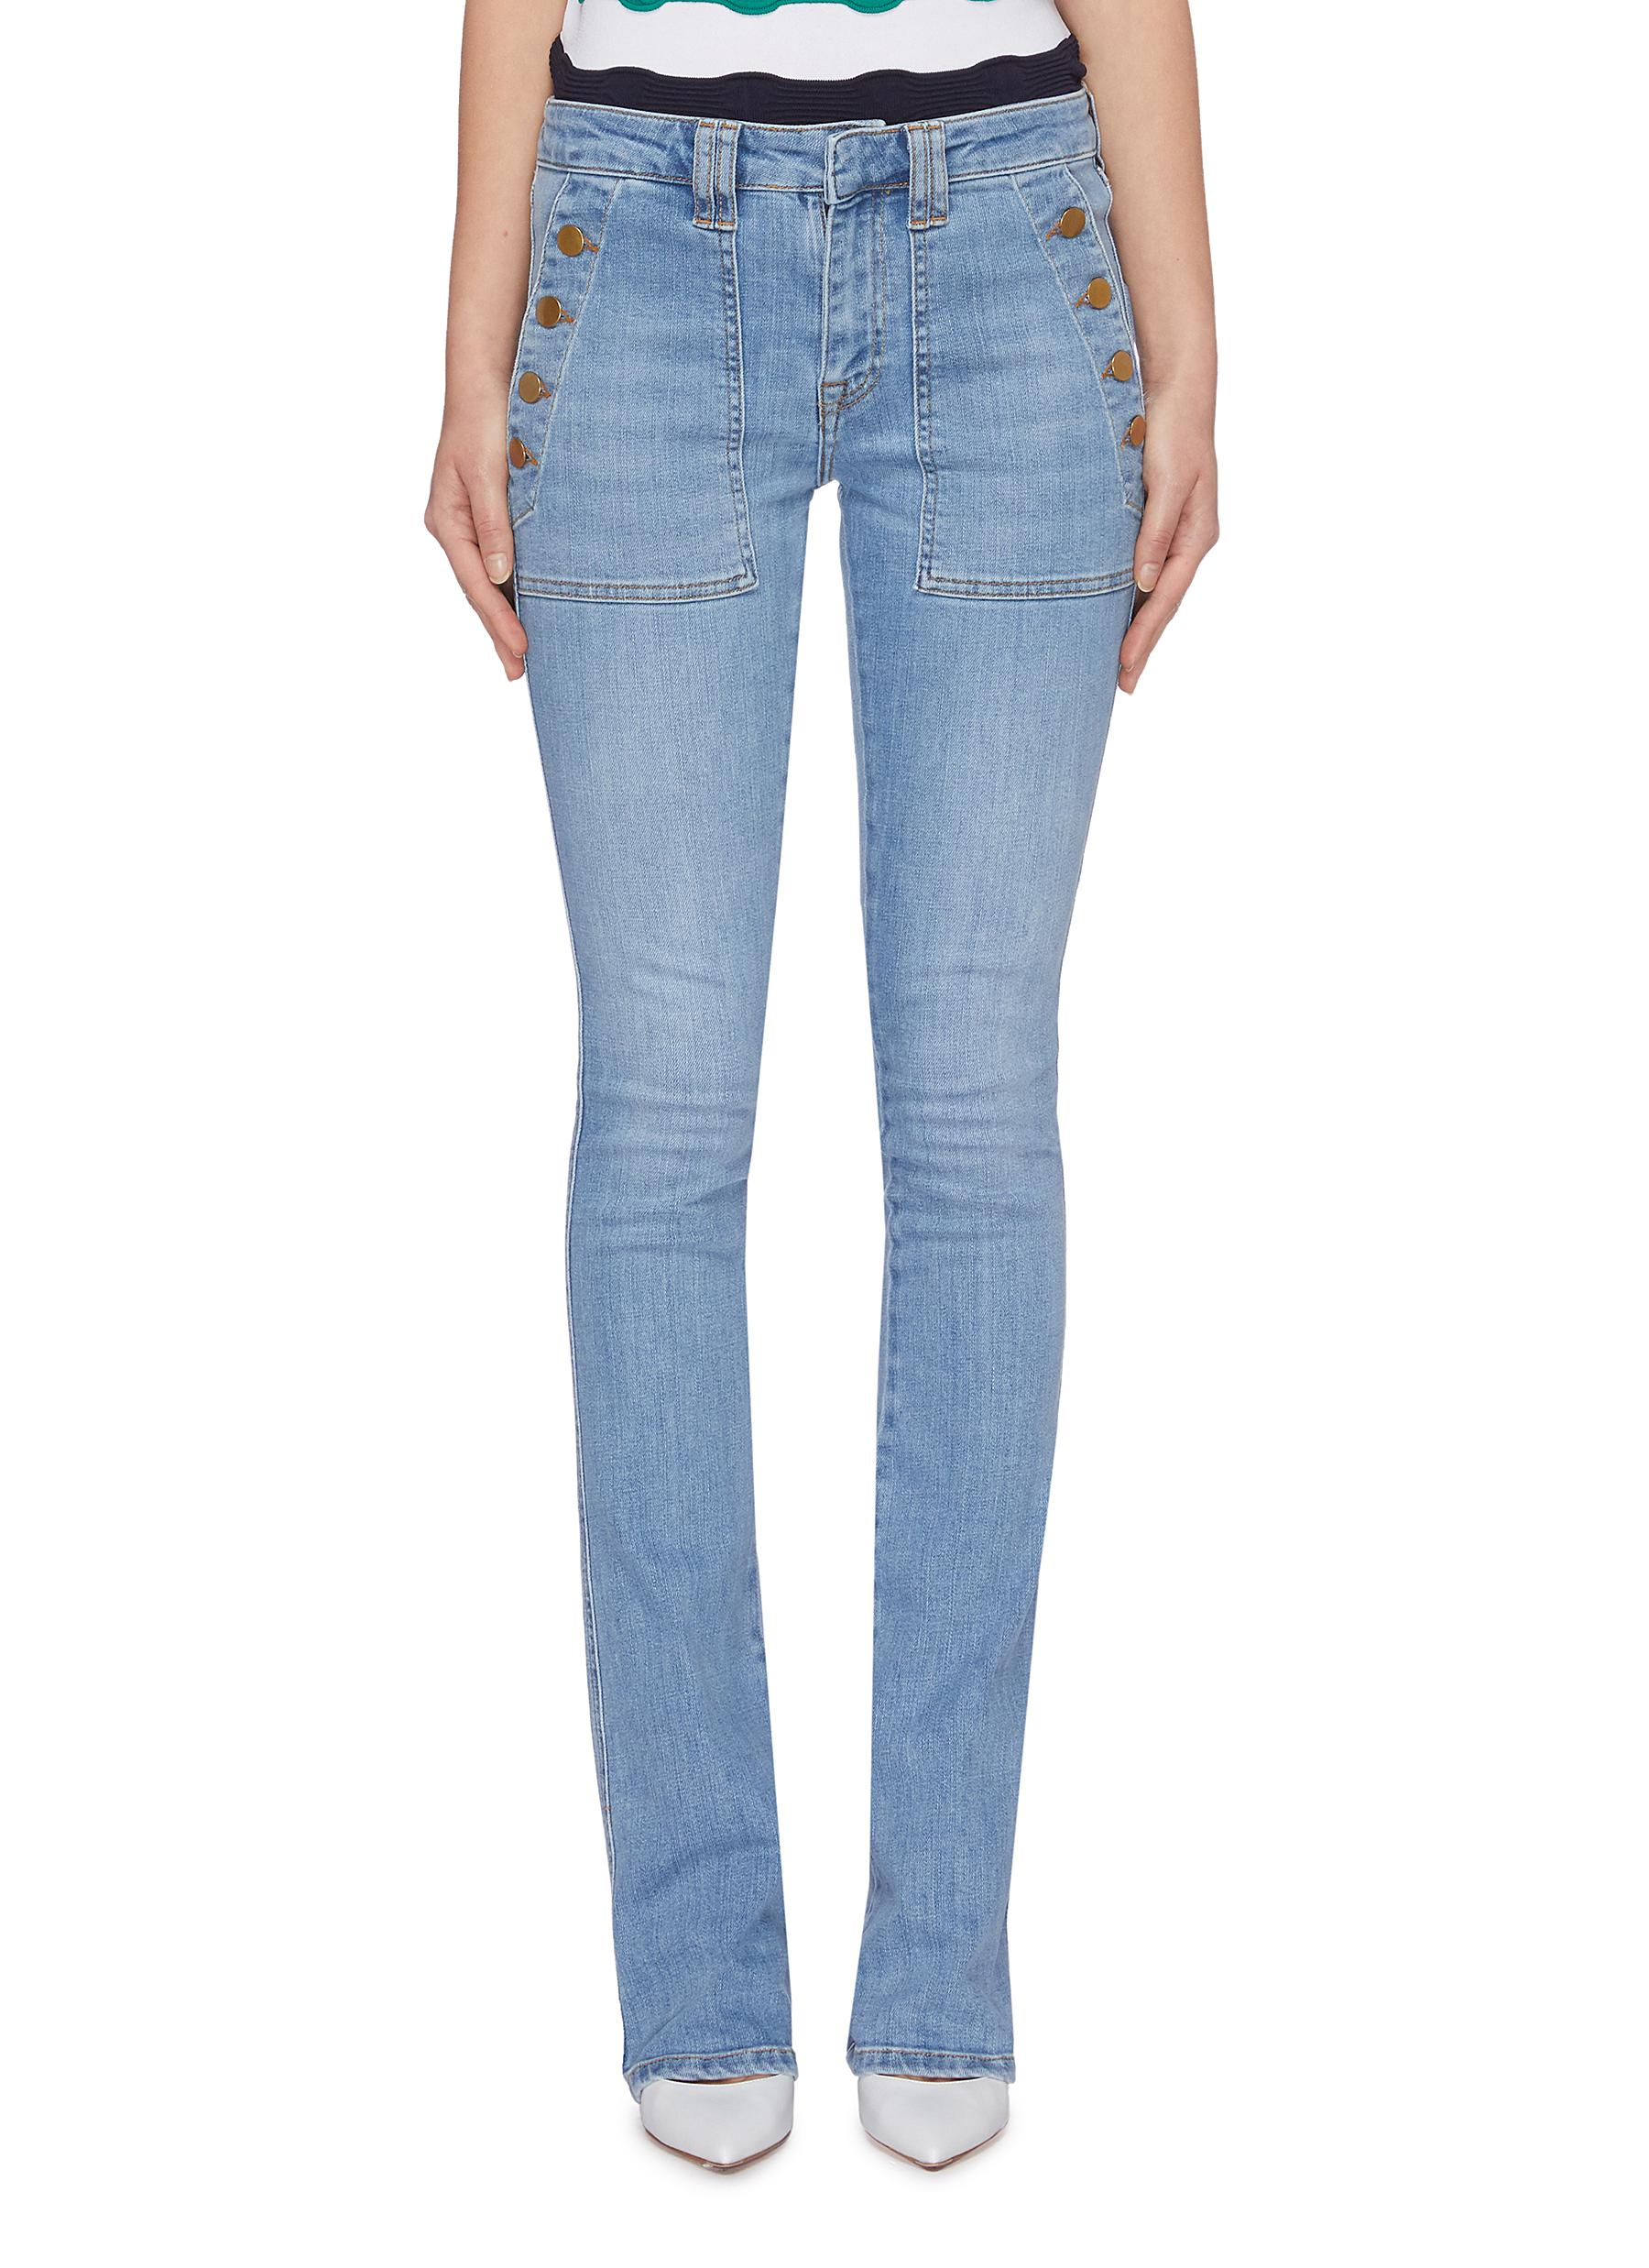 Button panelled pocket flared jeans by Victoria, Victoria Beckham